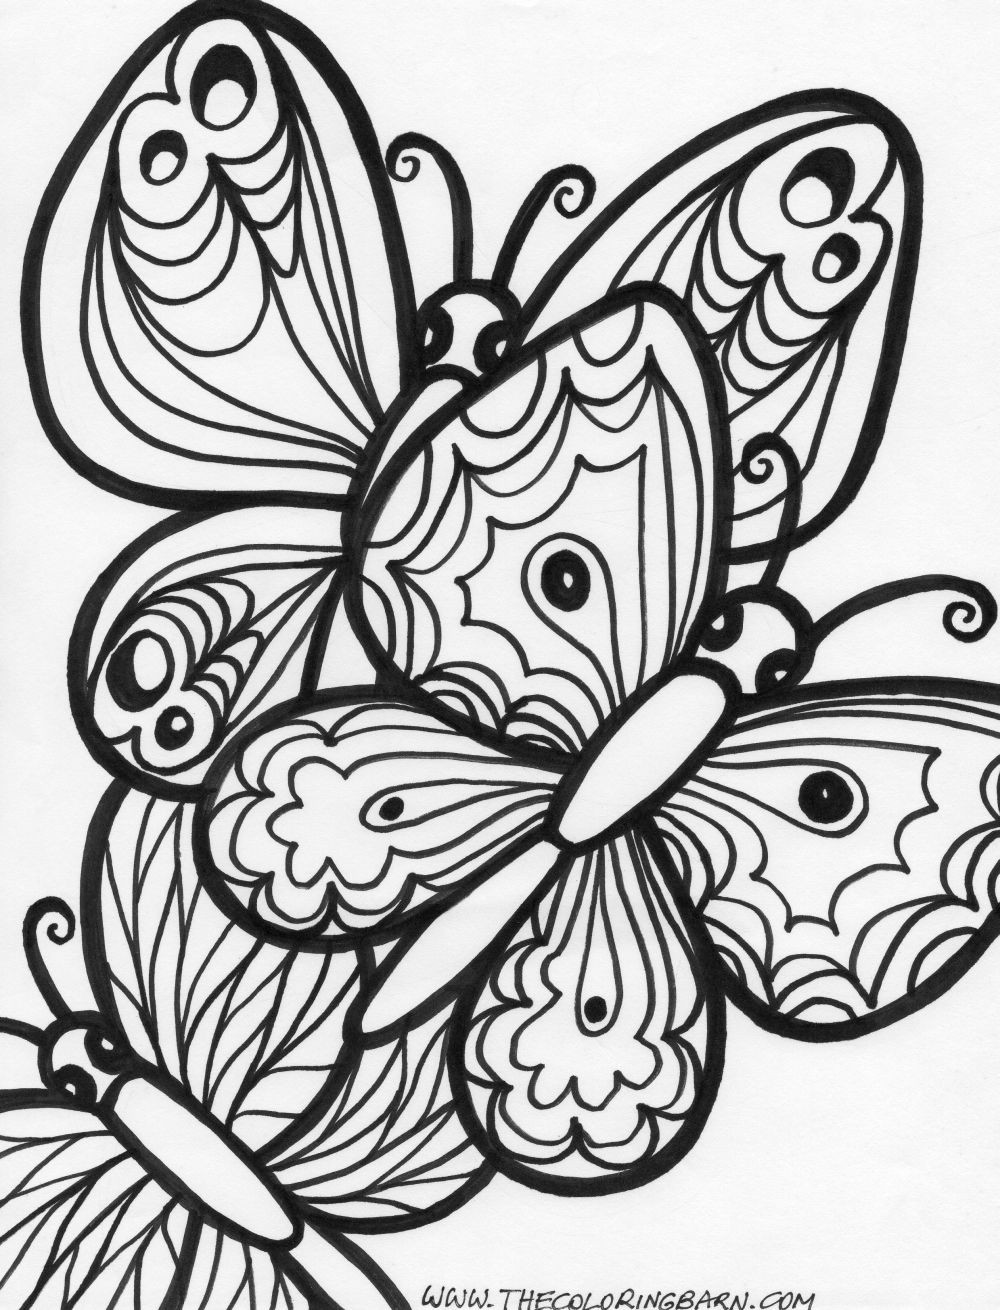 Best ideas about Butterfly Printable Coloring Pages For Adults . Save or Pin Butterfly Coloring Pages Bestofcoloring Now.